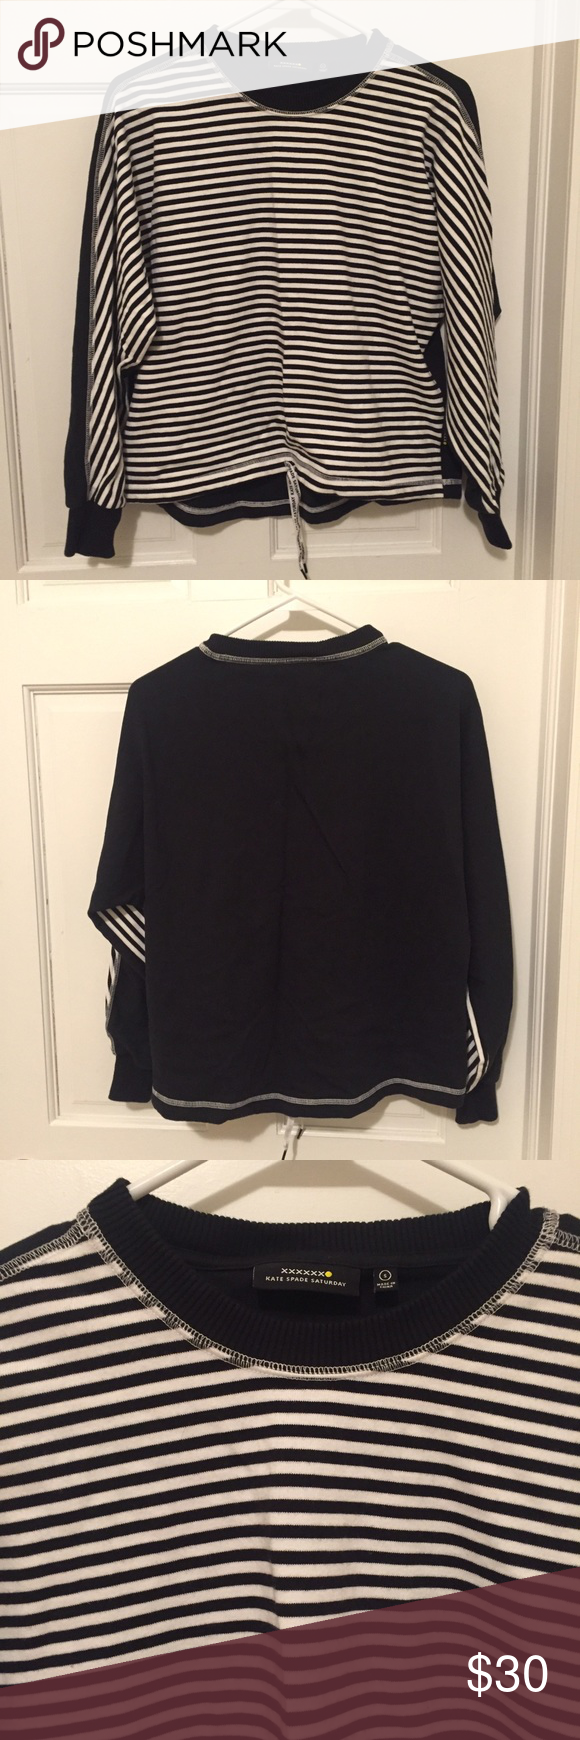 Kate Spade Saturday Pullover Kate Spade Saturday pullover. Black and white stripes on front. Back is solid black. Small draw string in front. Size Small. kate spade Tops Sweatshirts & Hoodies